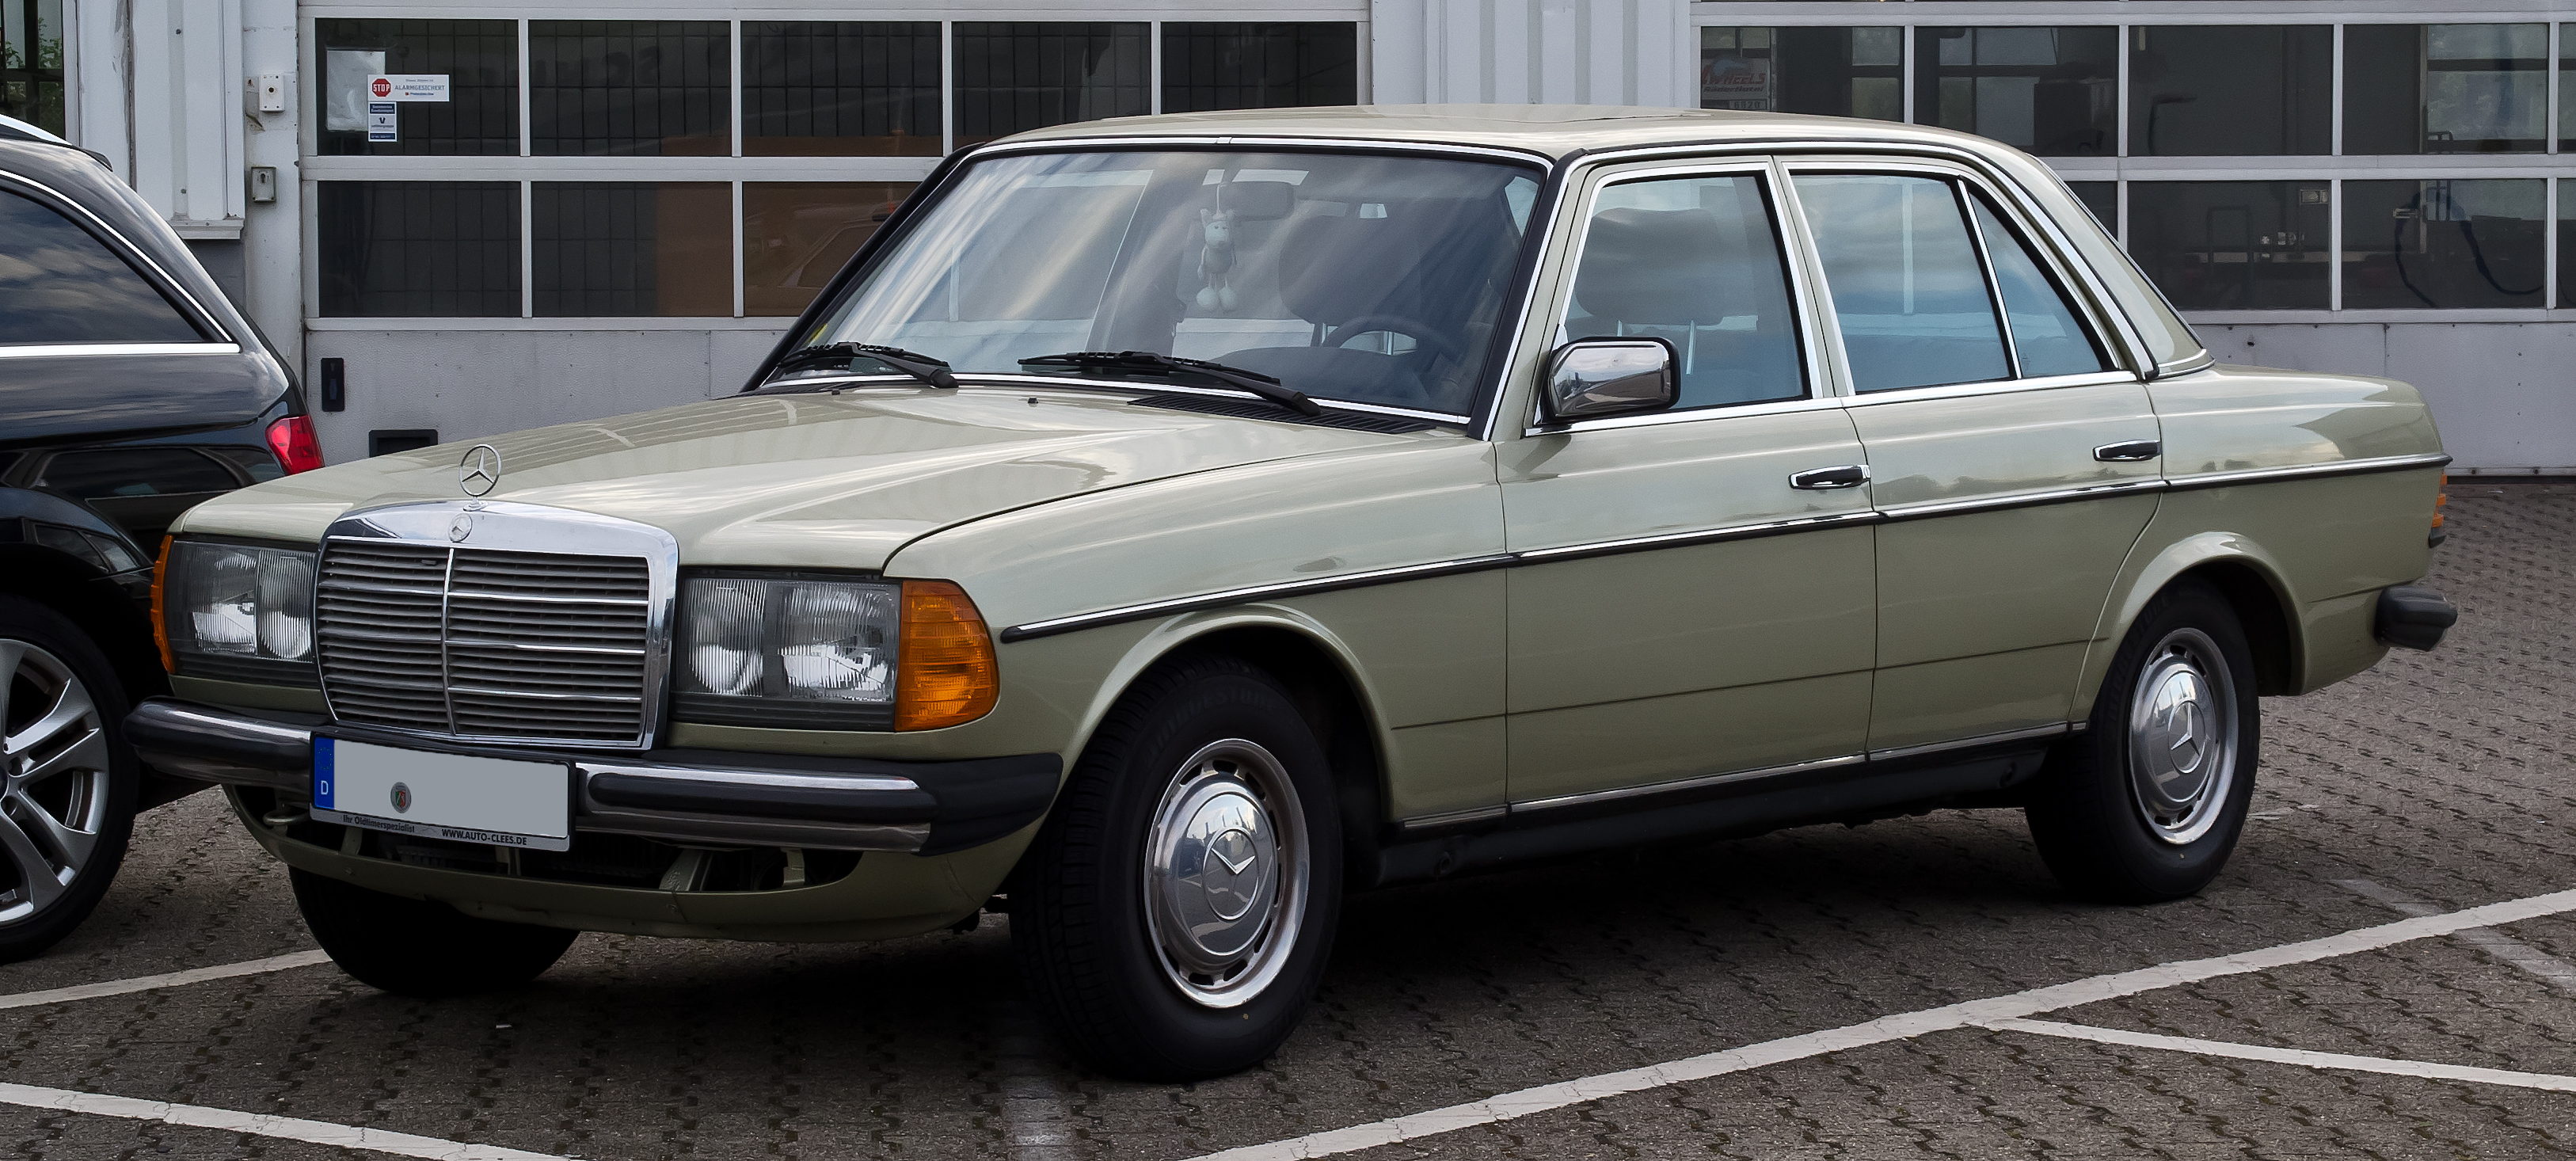 Mercedes-Benz 240 D 3.0 photo 08